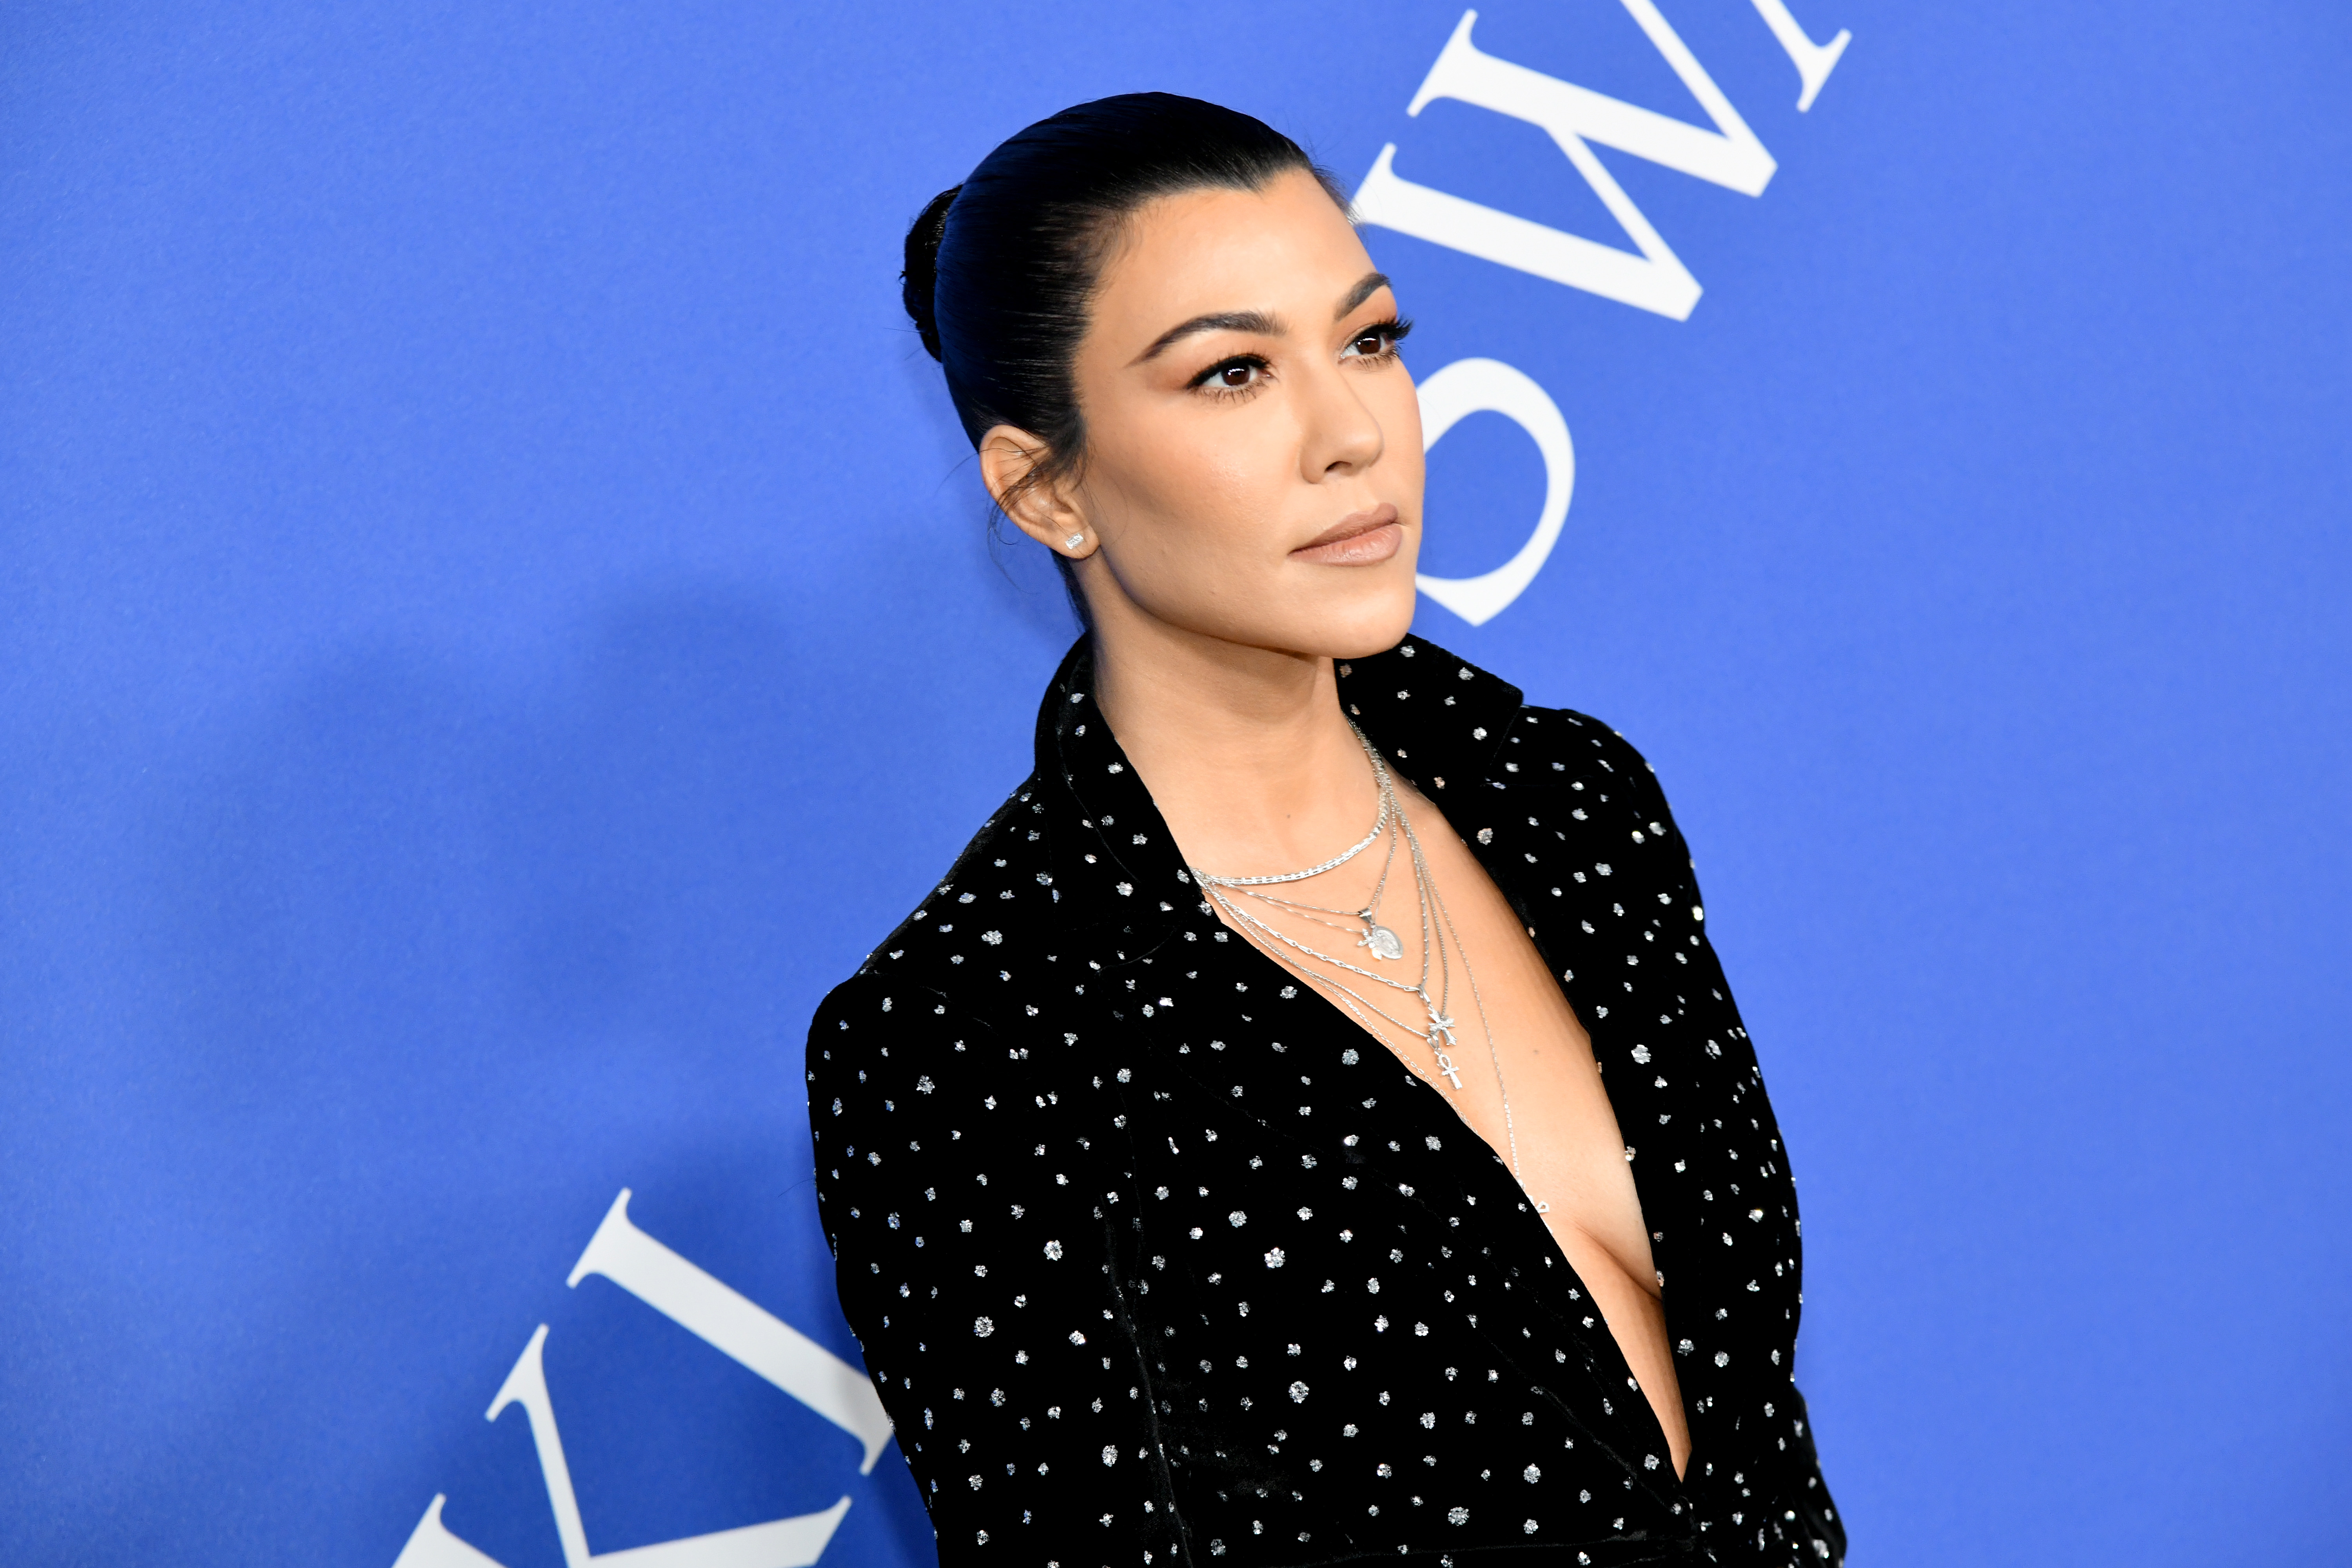 Here's Why Kourtney Kardashian Shouldn't Use the Word 'Yoni' for Vagina